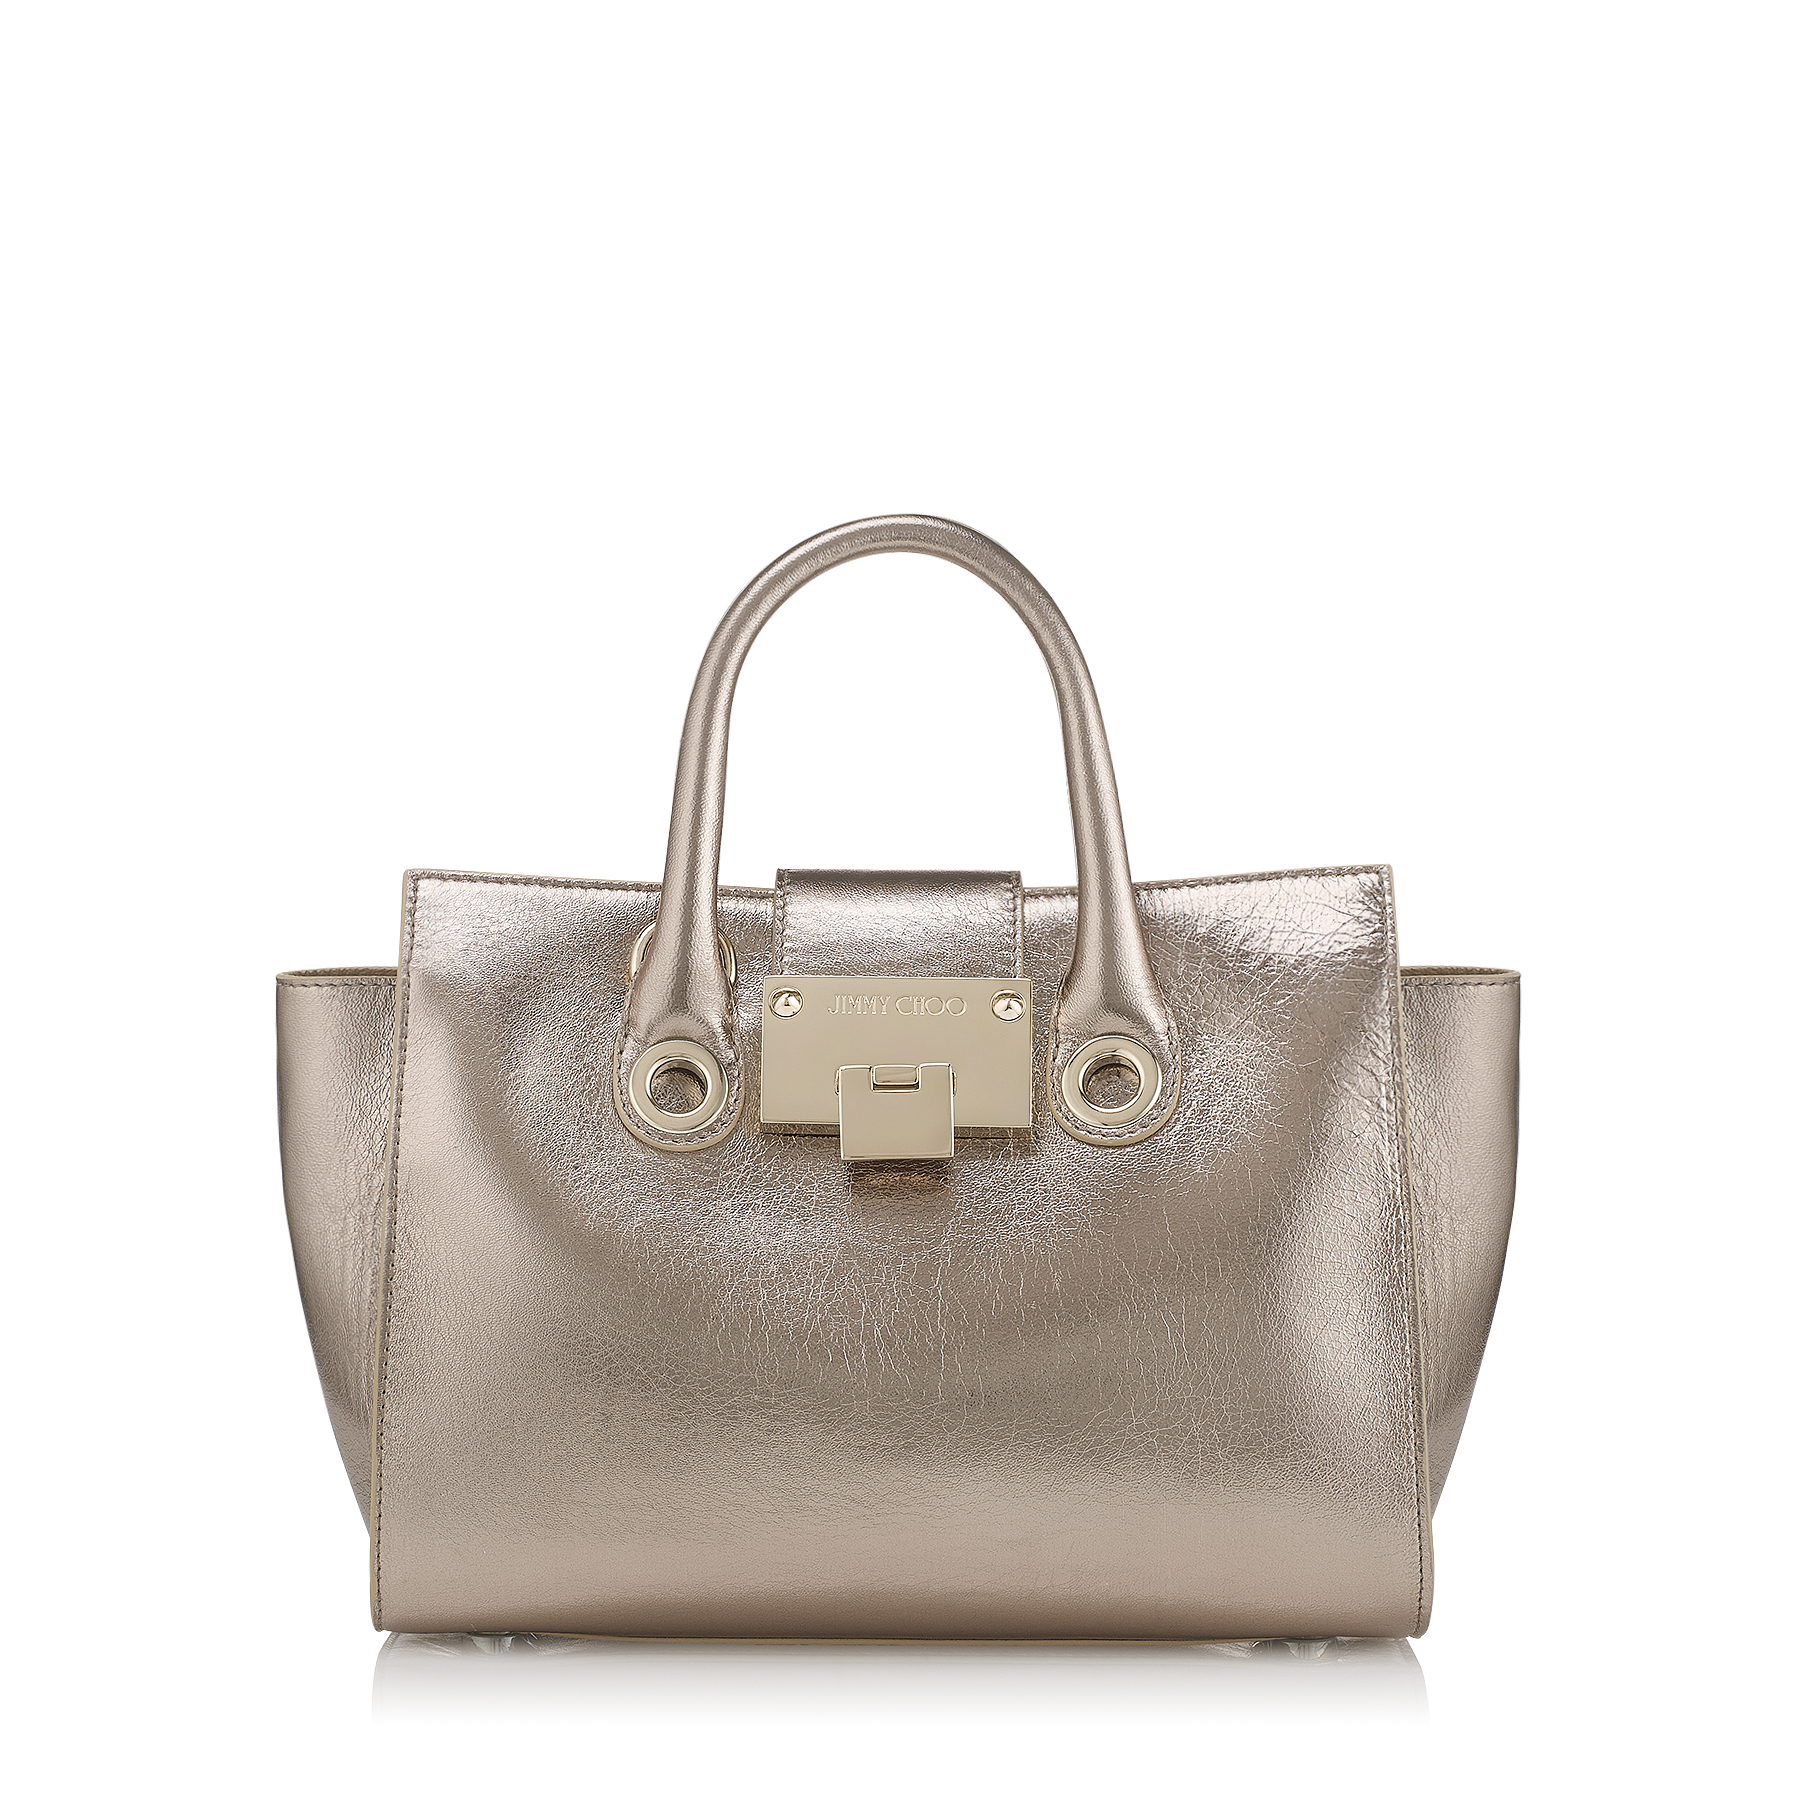 RILEY/S Nude Metallic Crinkled Lambskin Mini Tote Bag